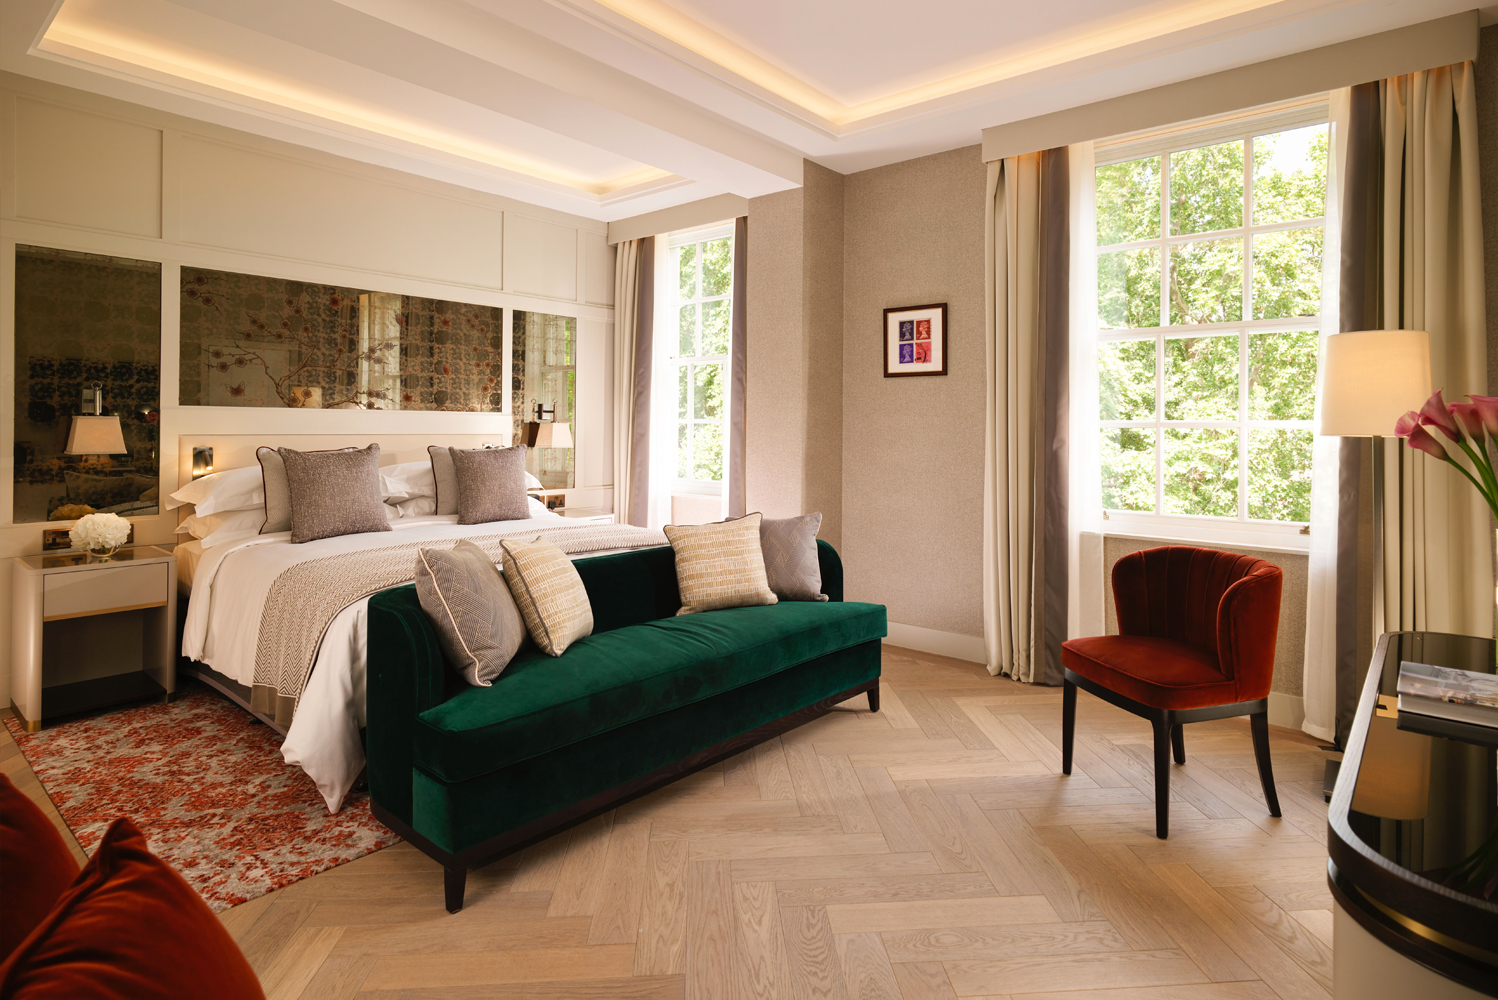 The interior design of The Biltmore Mayfair is the result of the work of London-based designers, KCA International and Goddard Littlefair.